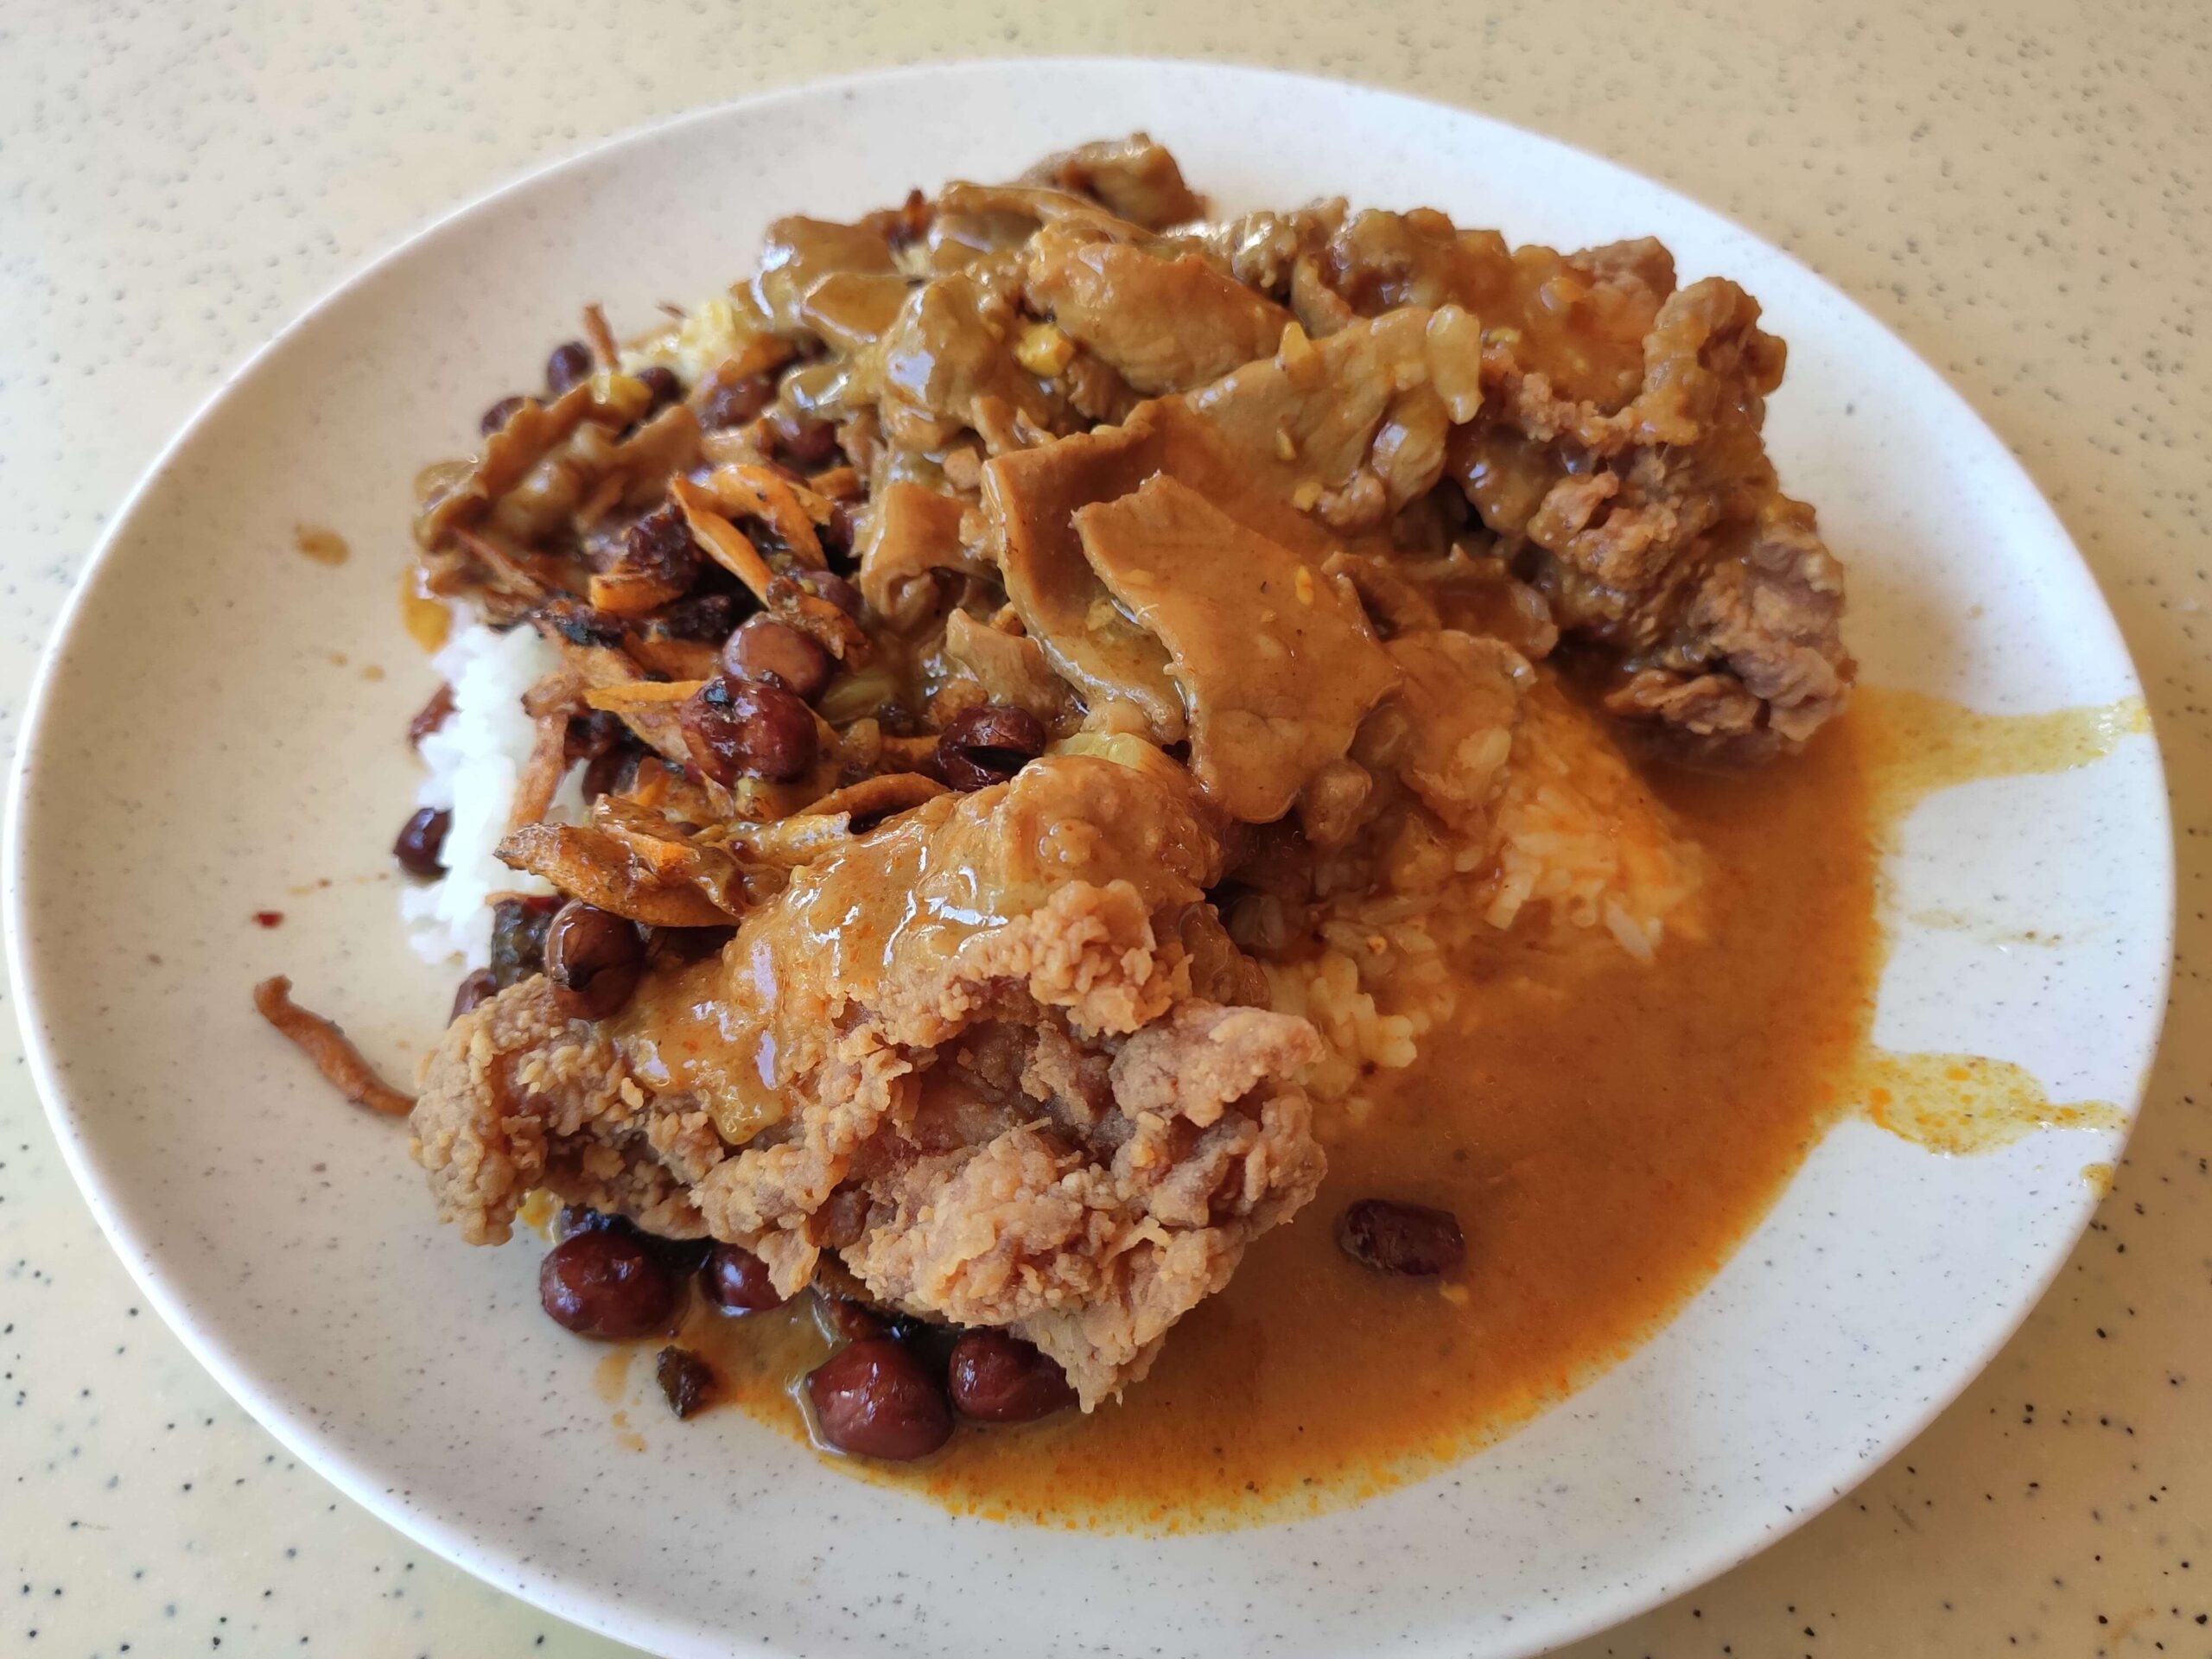 Kheng Nam Lee Curry Rice: Fried Chicken, Sliced Pork, Ikan Bilis & Peanuts with Curry & Rice